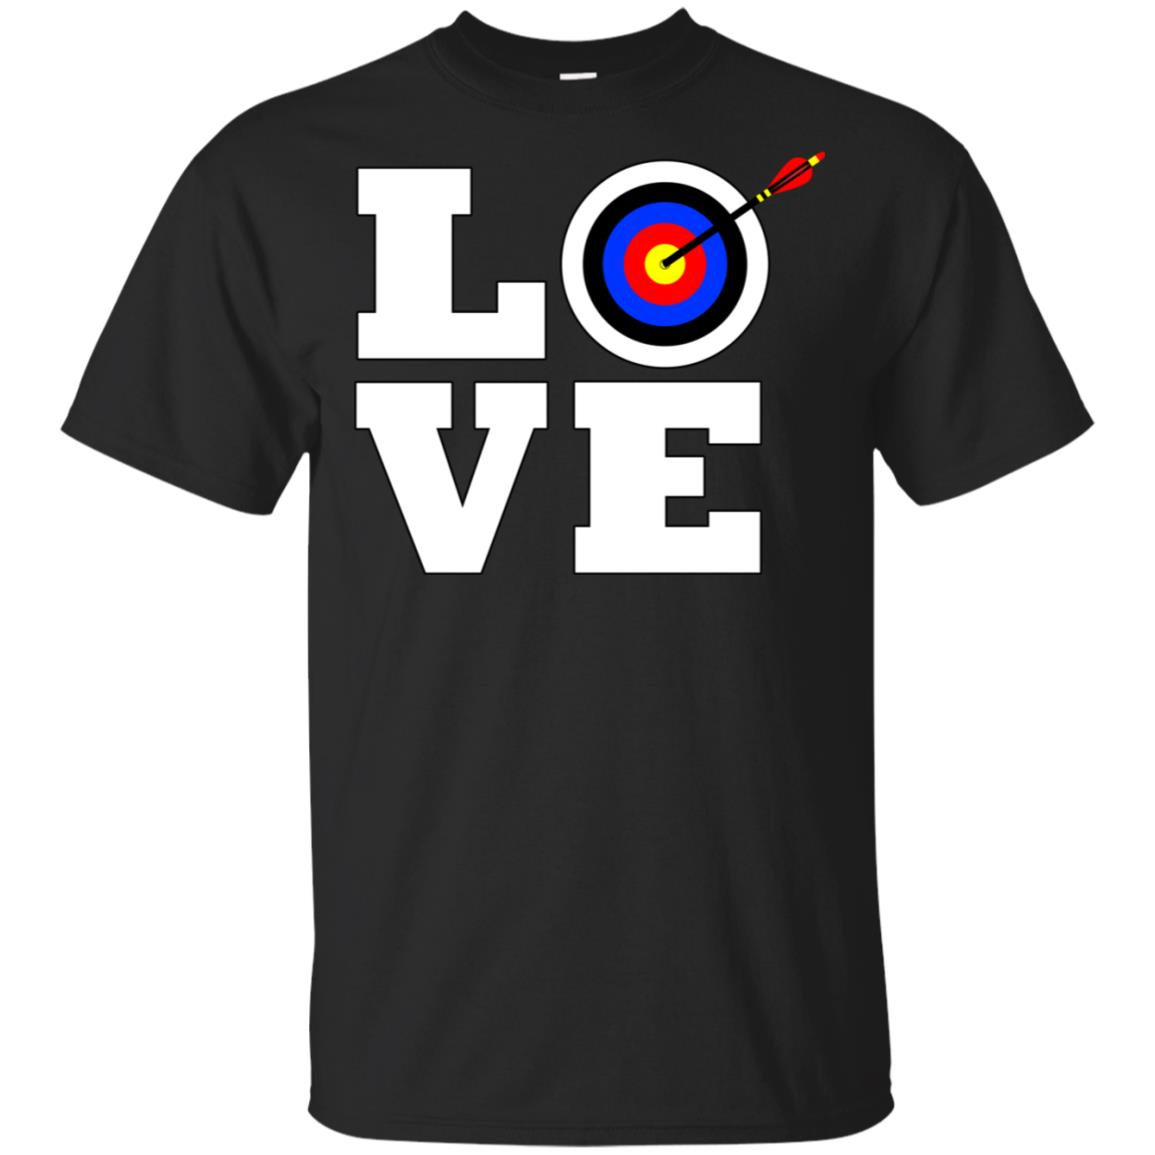 Archery Love for Bow Hunters and Archers Unisex Short Sleeve